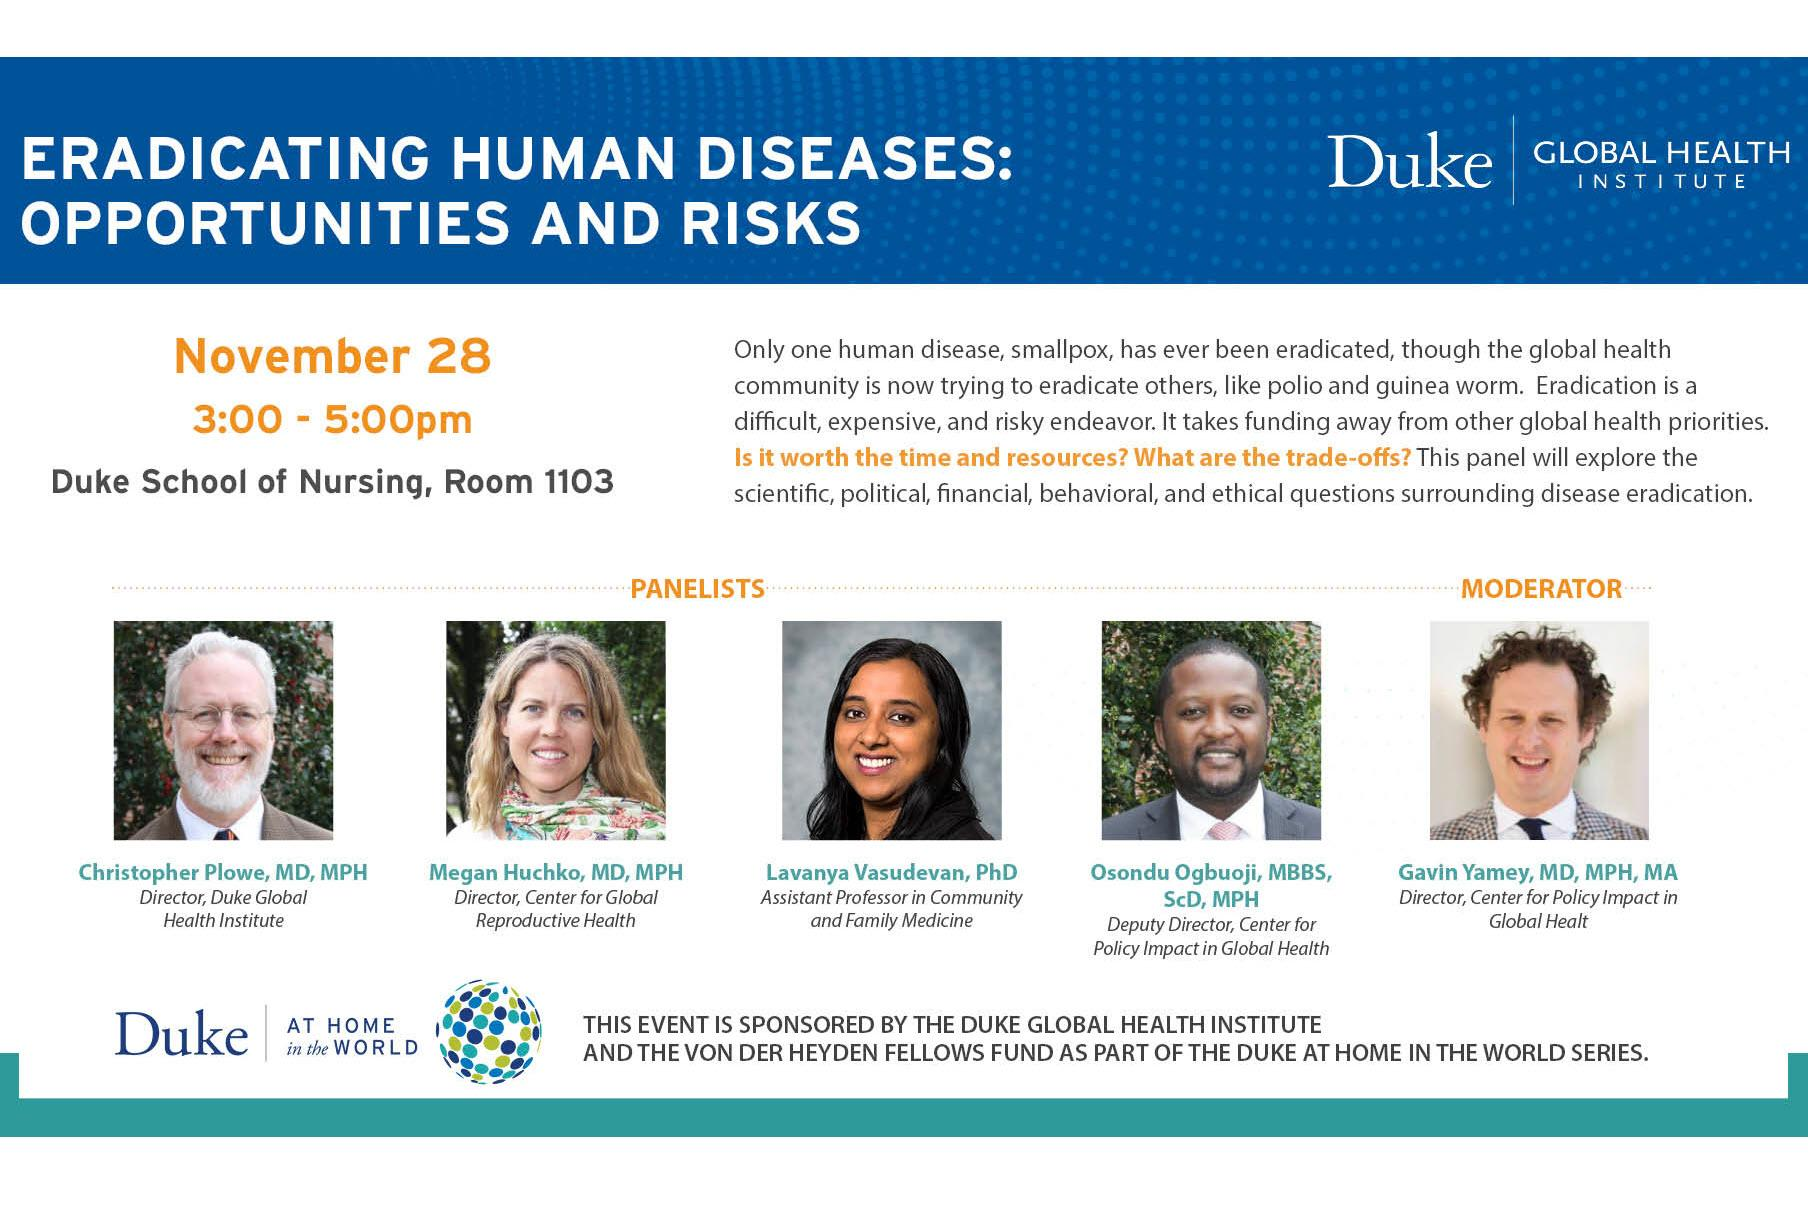 Duke Global Health Institute; Eradicating Human Diseases: Opportunities and Risks